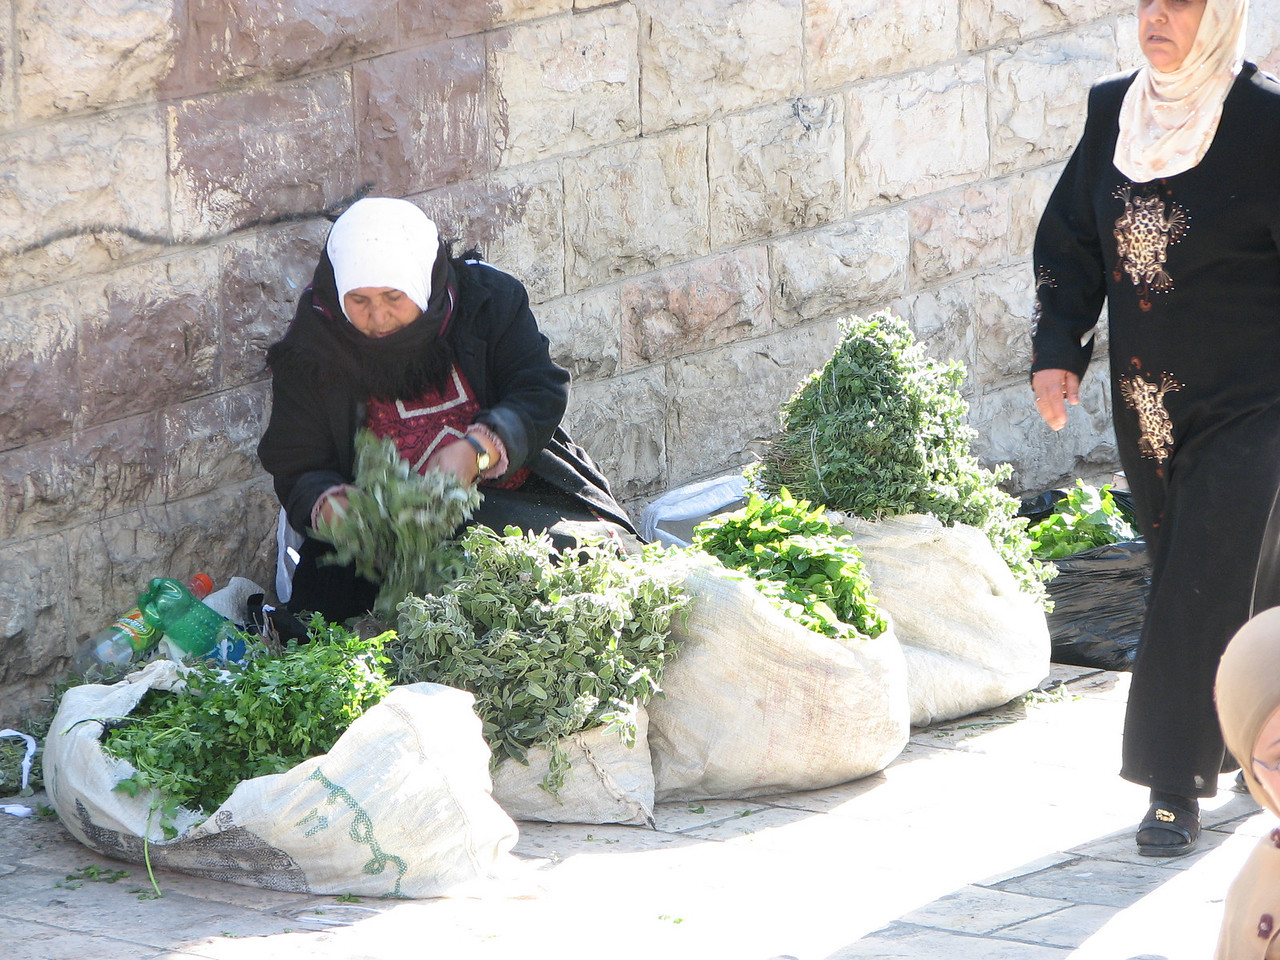 2007 12 29 Sat - Old City walk - Damascus Gate market woman 2 on North side of Old City